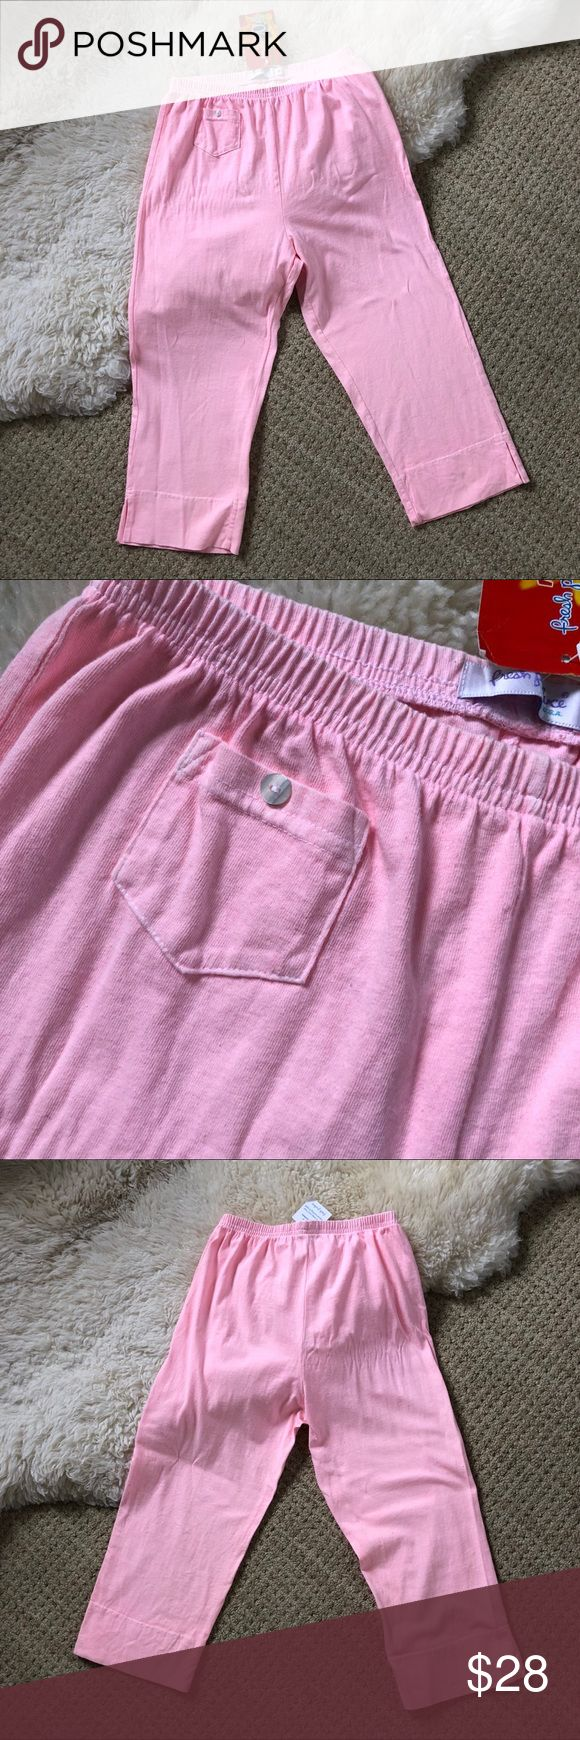 NEW Nordstrom Fresh Produce Pink Pants Size Medium Fresh Produce Perfect Pink Pajama Bottoms Carried at Nordstrom.  Brand New With Tags.  Bright and fresh.  Elastic waist.  Made in USA.  Fresh Produce is known for their hot color shades. So this pink is a light but a more neon light pink than the photos show.  Color: Perfect Pink Size: Medium Fresh Produce Intimates & Sleepwear Pajamas